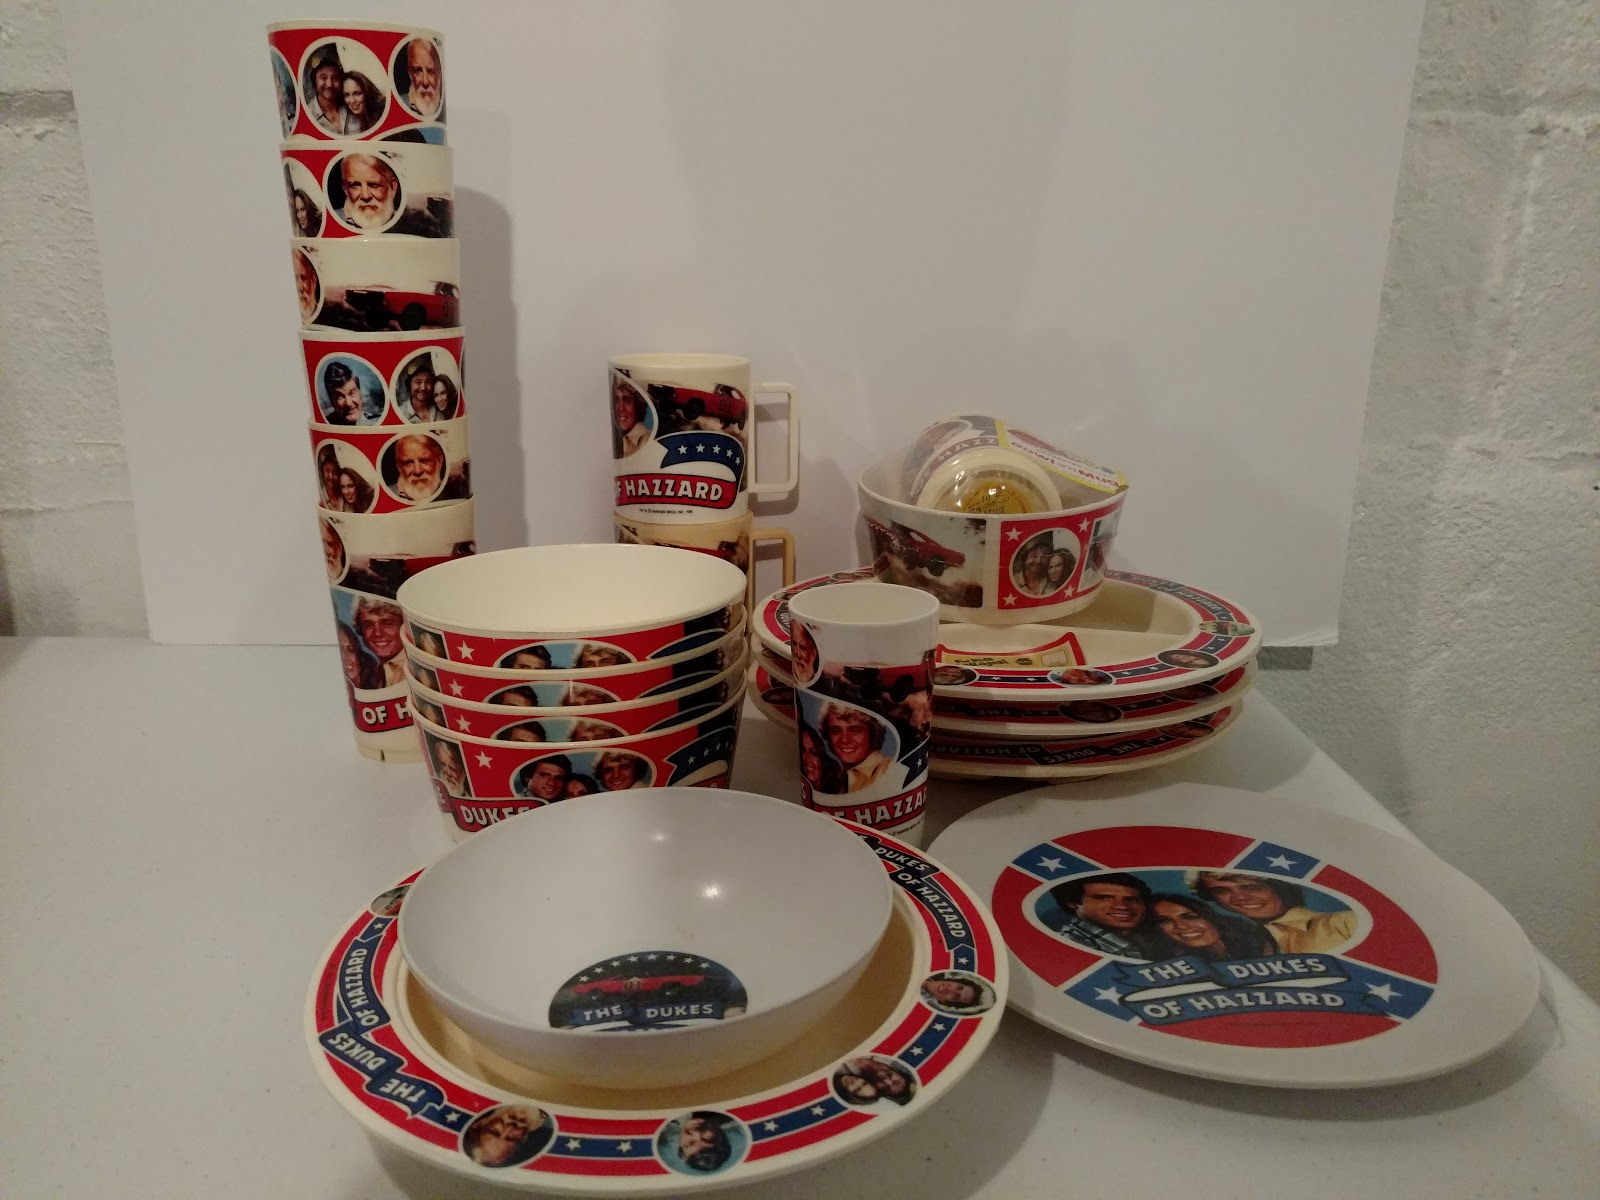 I once saw a boxed set that included a cup bowl and mug on ebay but I was outbid on it. That was probably a decade ago. & Dukes of Hazzard Collector: Deka Dukes of Hazzard Dinnerware - Mugs ...